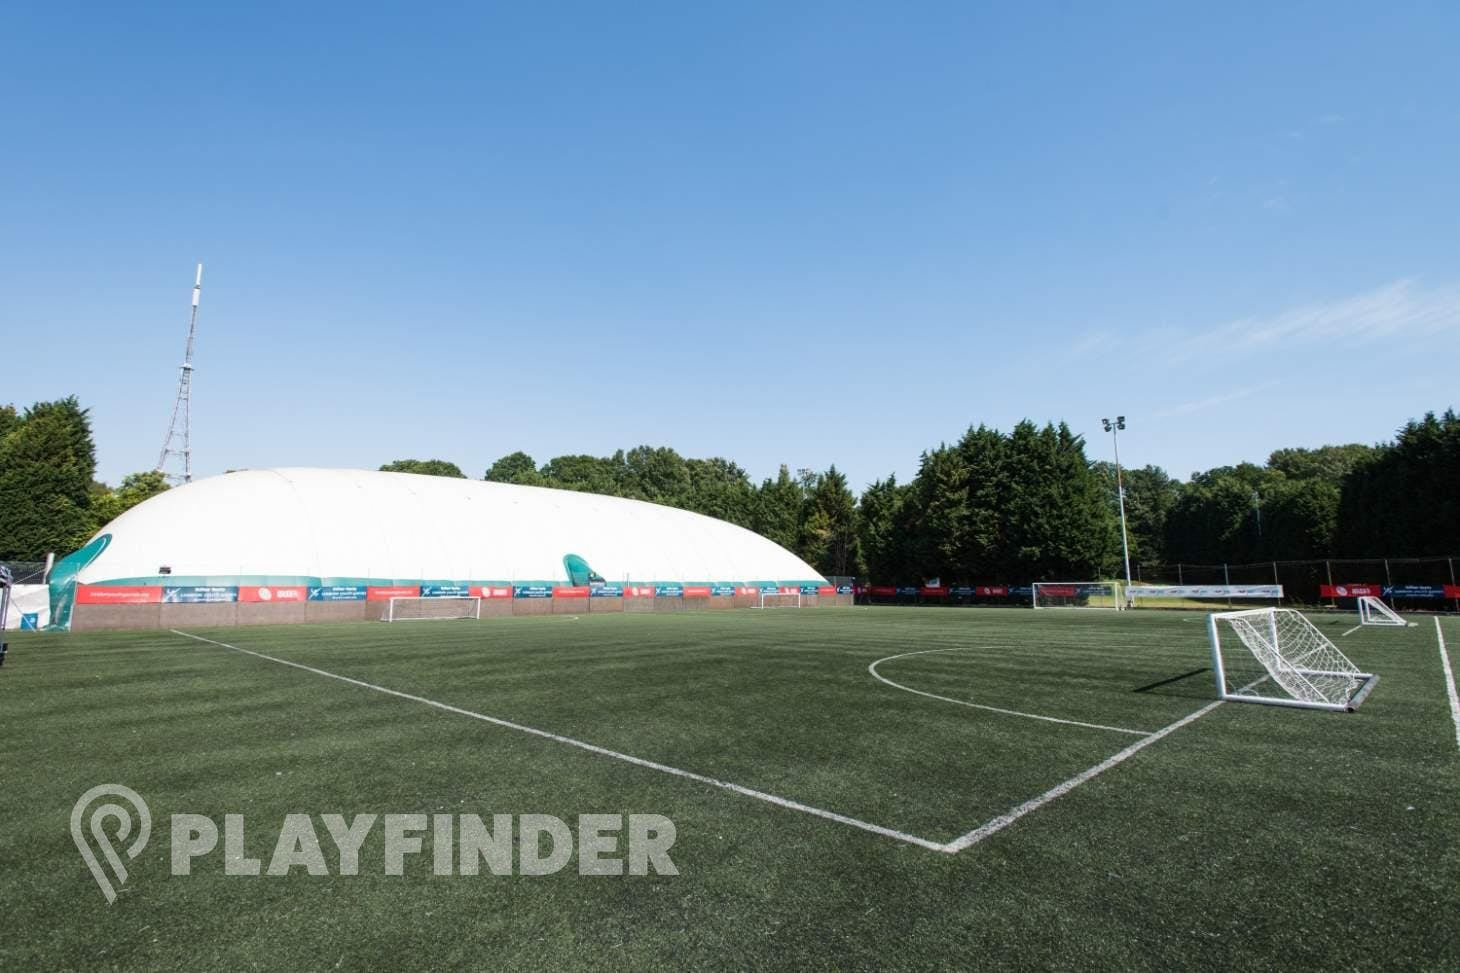 Crystal Palace National Sports Centre 6 a side | 3G Astroturf football pitch